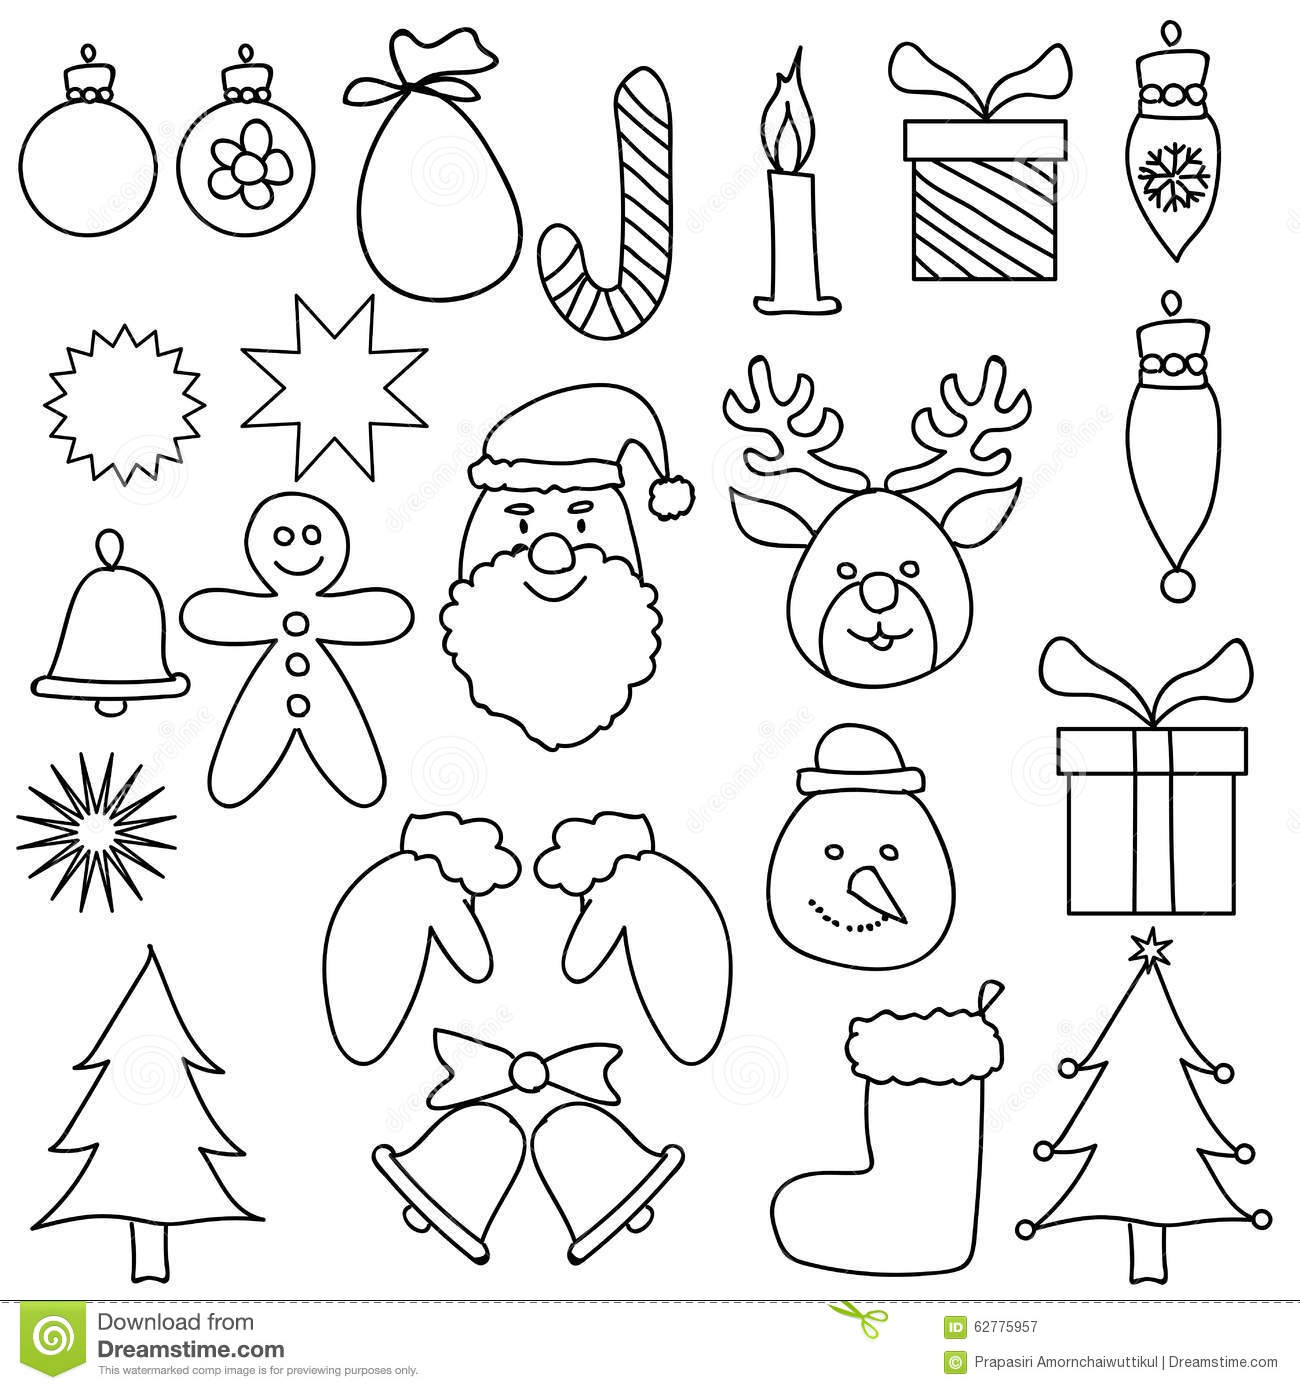 Christmas ornament black and white - Christmas Ornament Drawing Set Black White Royalty Free Stock Photography